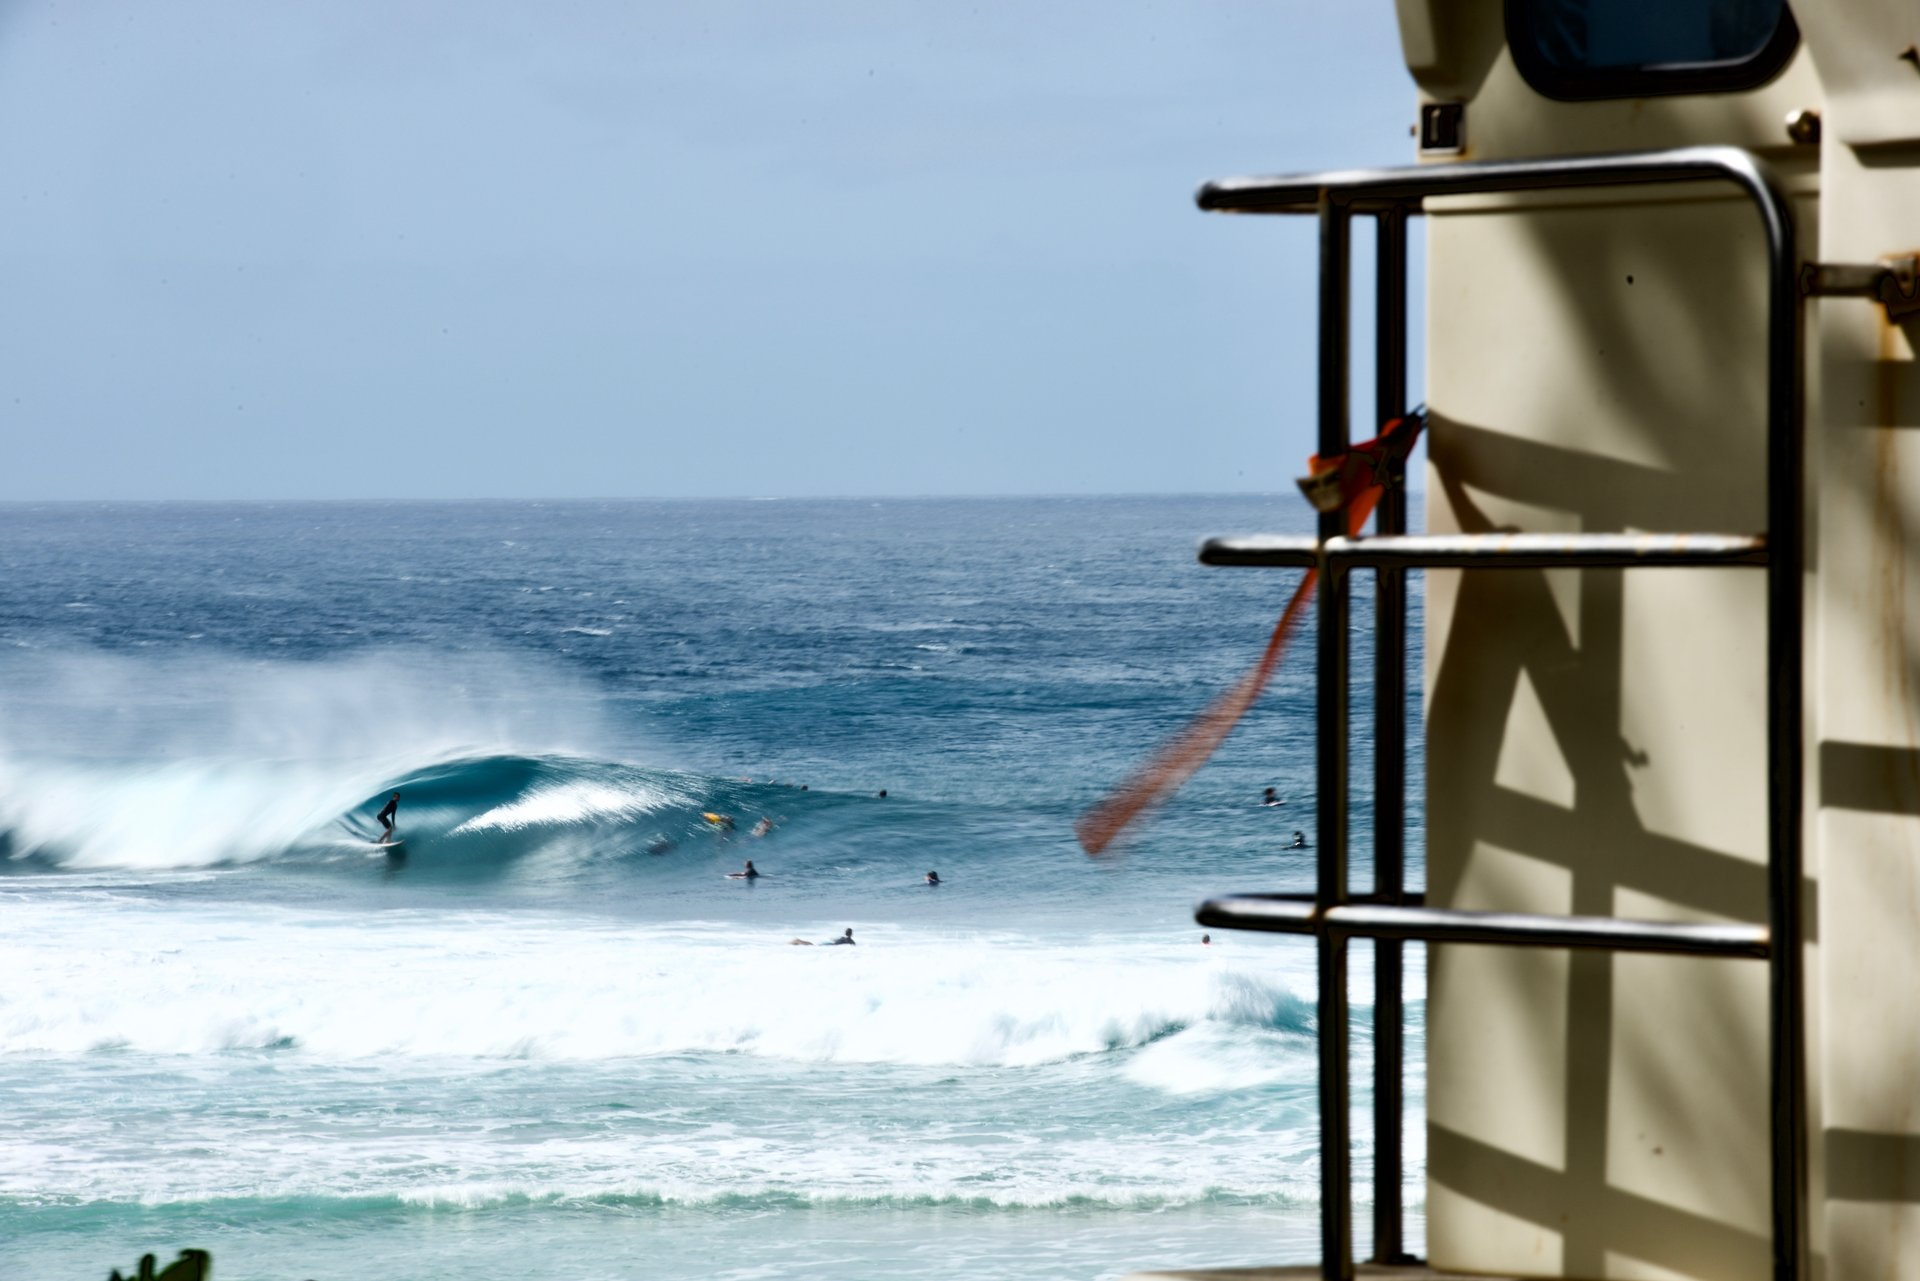 Dan Bielich's photo of Pipeline & Backdoor